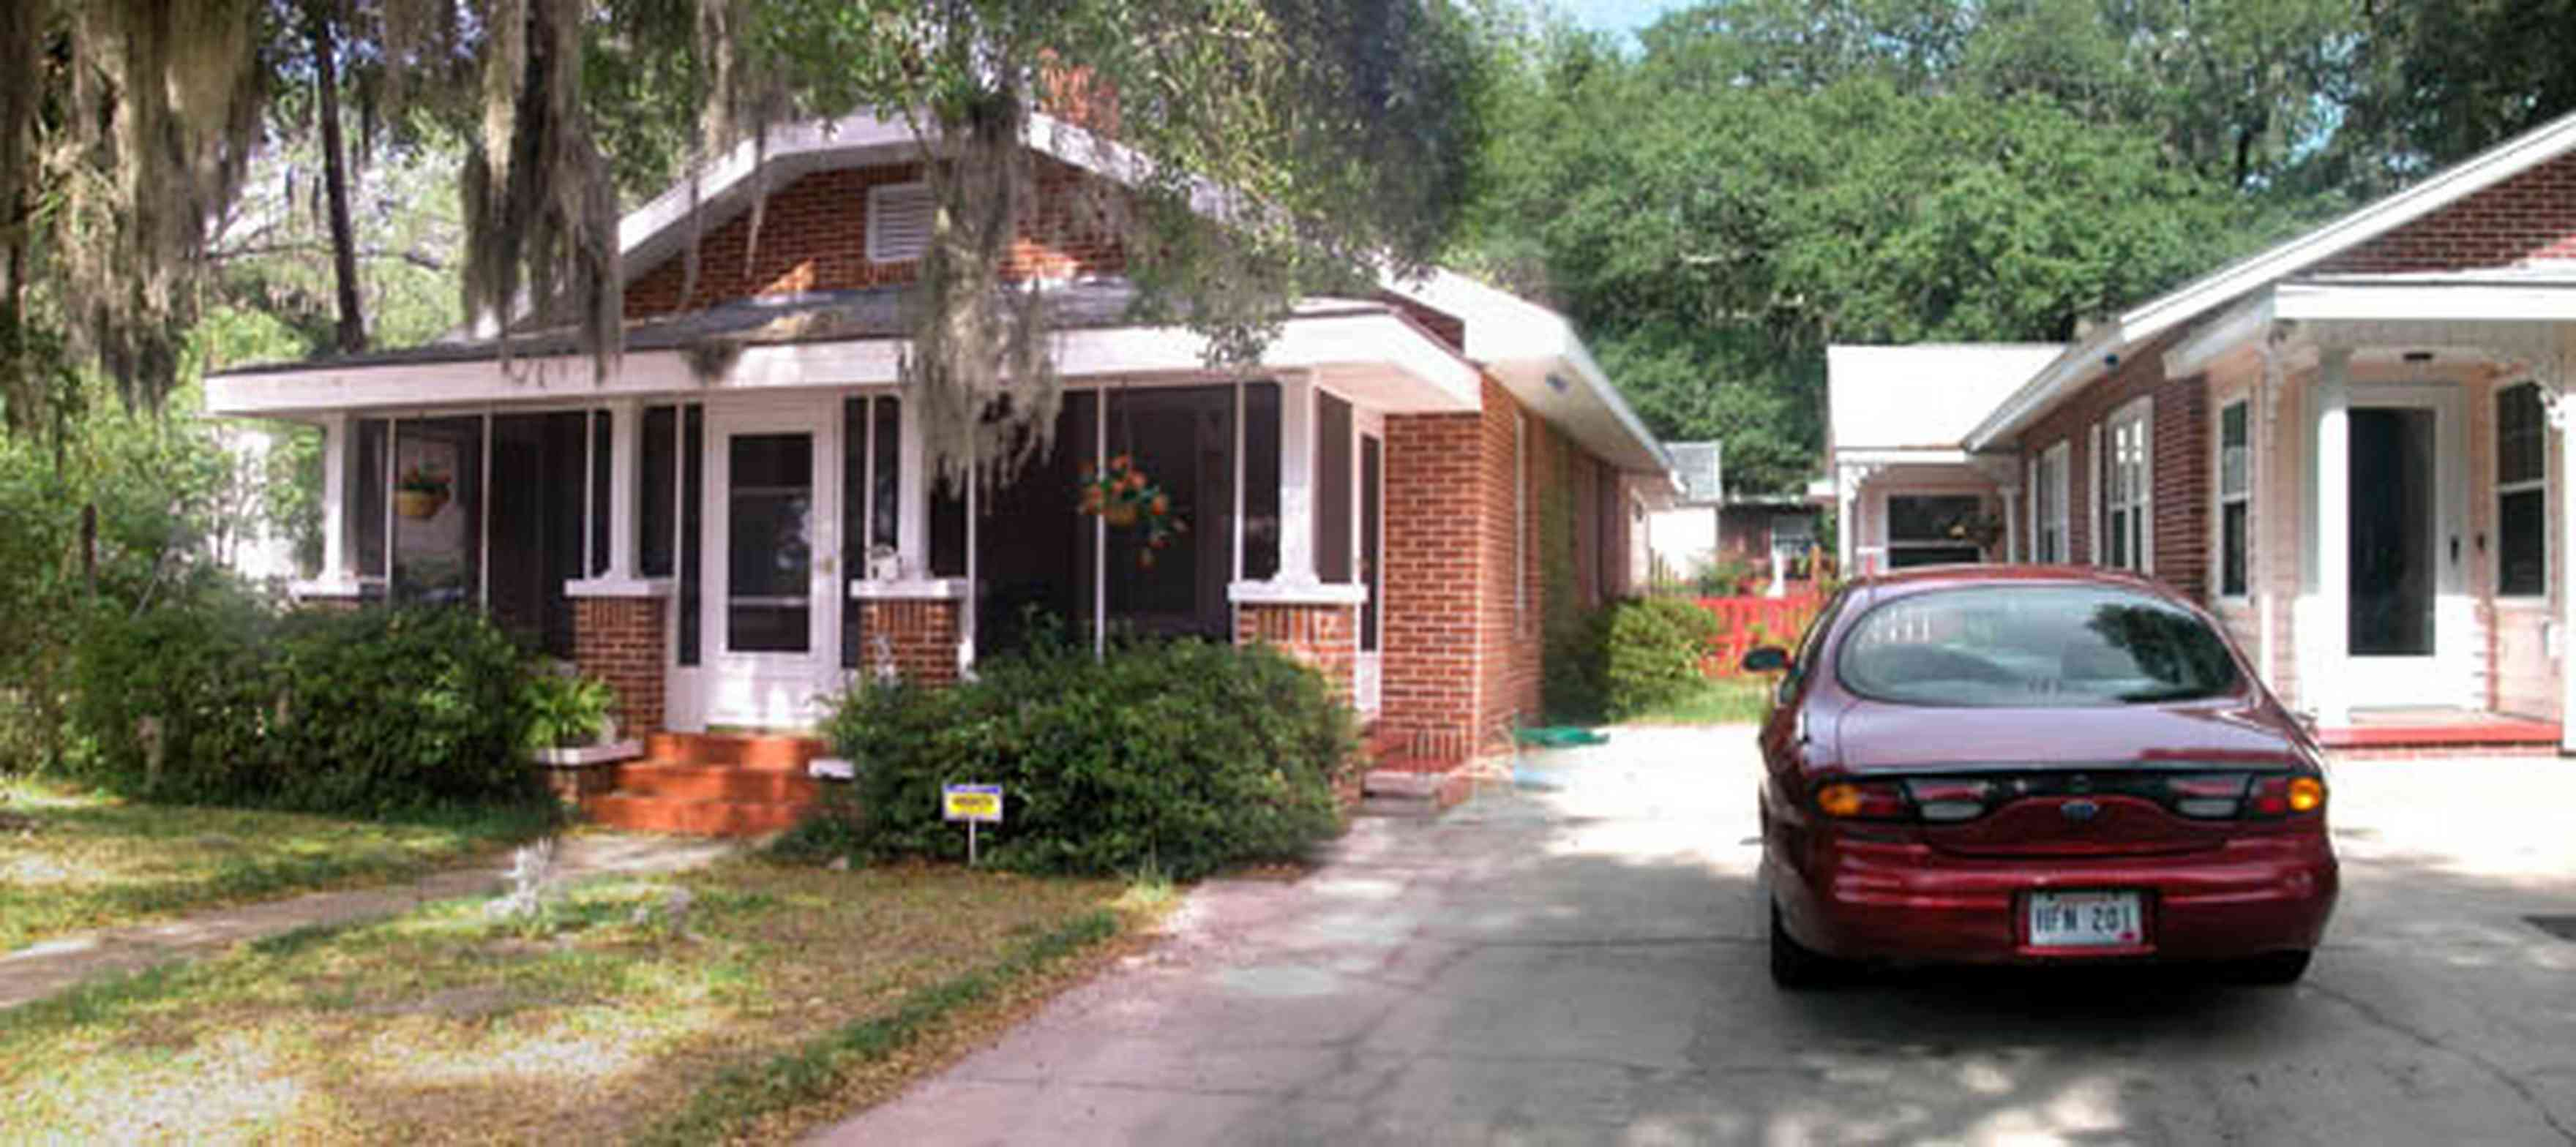 East-Pensacola-Heights:-118-Bayou-Blvd_01.jpg:  craftsman cottage, spanish moss, bayou texar, oak tree, red brick house